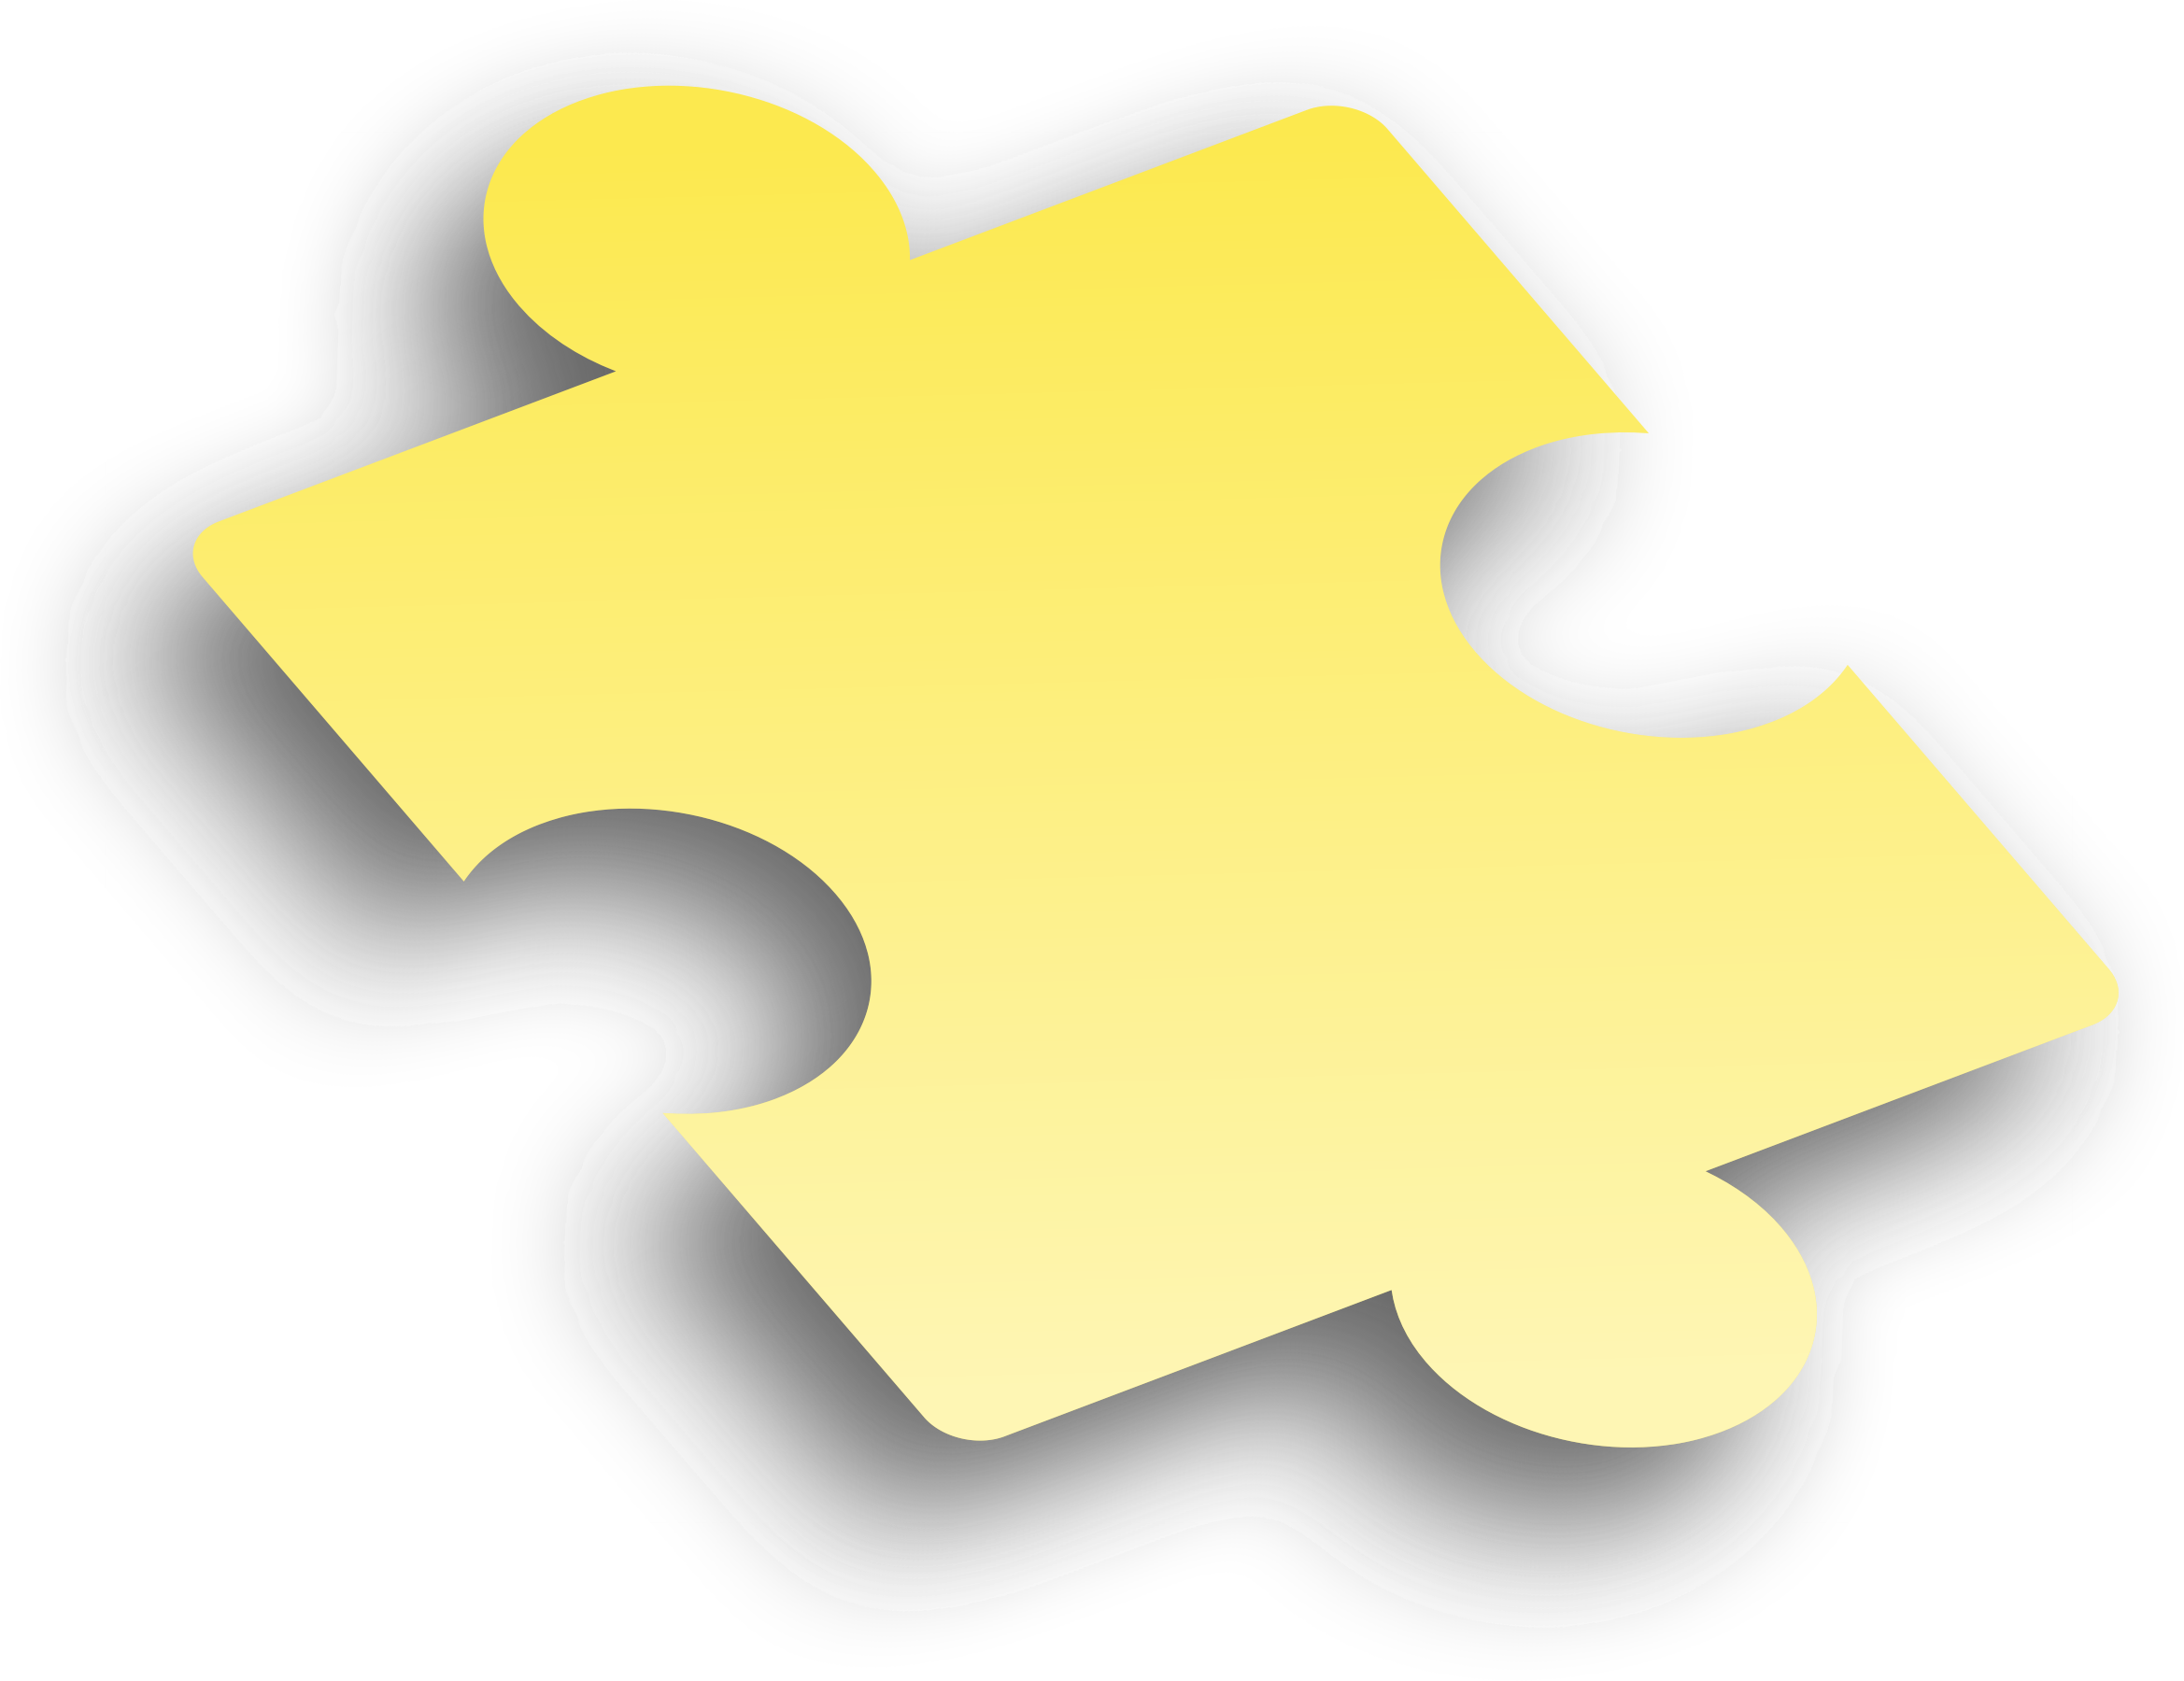 black and white download Pieces clipart yellow. Puzzle piece big image